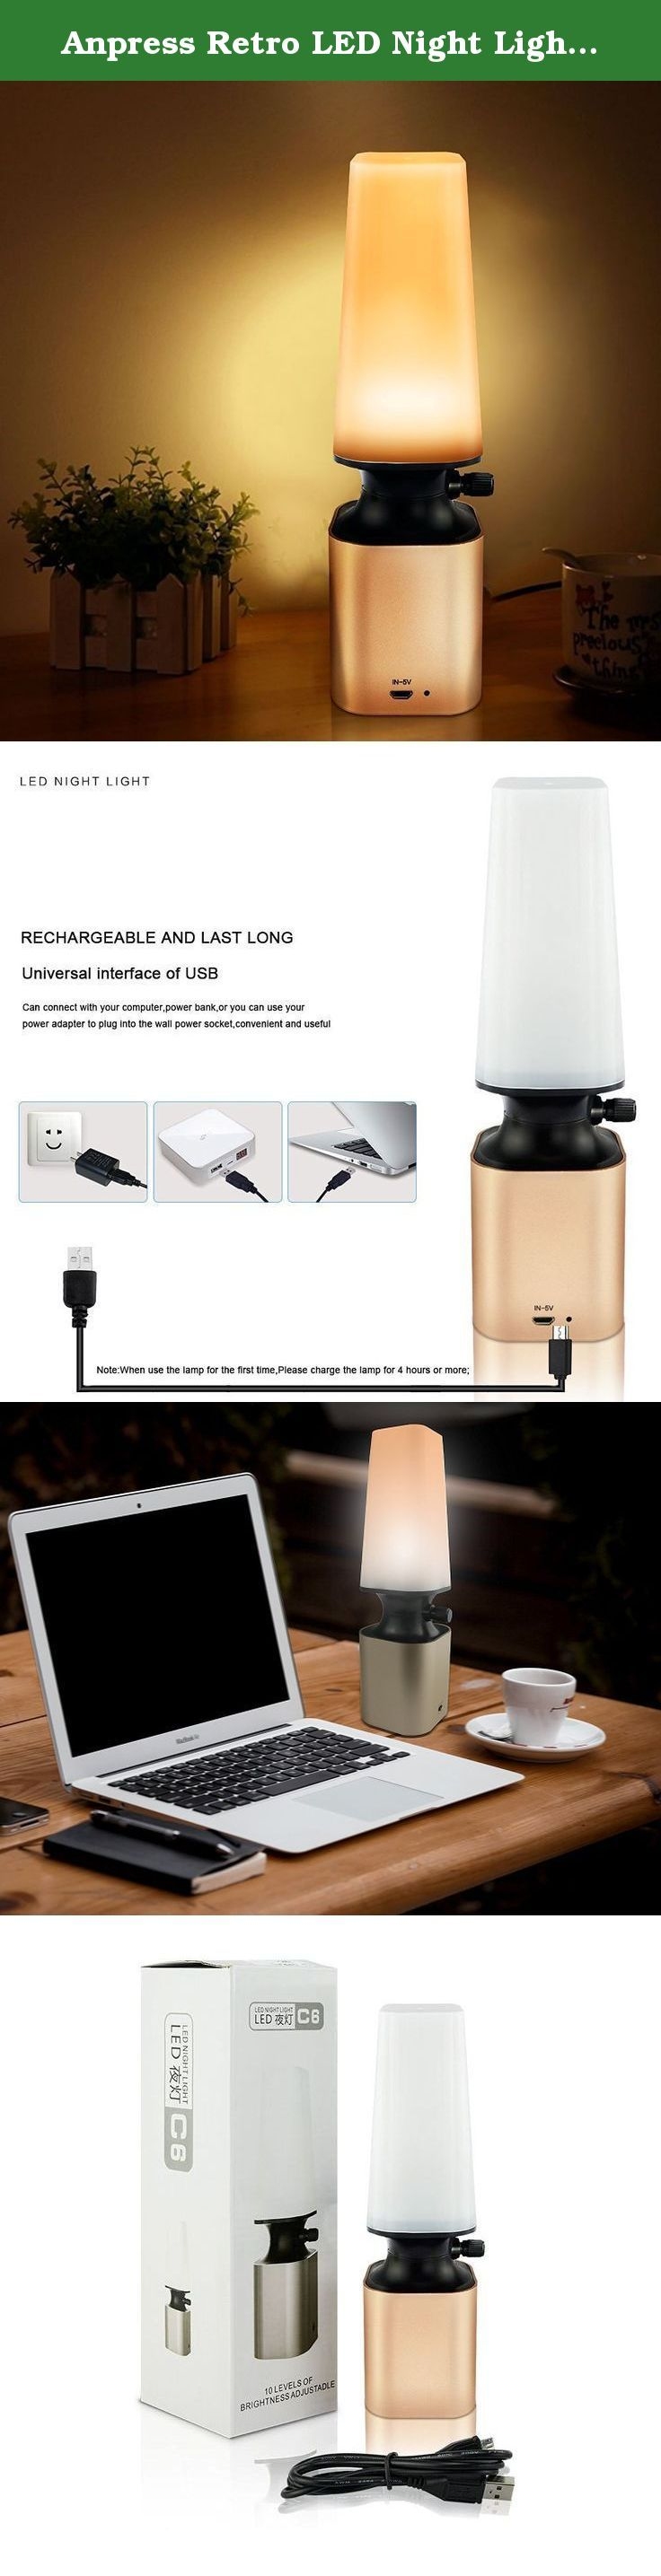 Anpress Retro LED Night Light Imitate Kerosene Oil Lamp Design with 10-Level Dimmer Control Knob Eye Care LED Desk Light USB Rechargeable Lamp for Reading/Home/Working/Office/Study. Features: ★ Rechargeable, Wireless & Portable ★ Flexible Power Supplies: PC, Power Bank, Mobile Adapter, etc. ★ Compact One-key Design, 10-Level Dimmer Control Knob ★ Eye-caring, no ghosting, anti-glaring & non-flickering ★ Energy-Saving, Eco-friendly, Mercury free & Radiation free ★ Long Working Time…